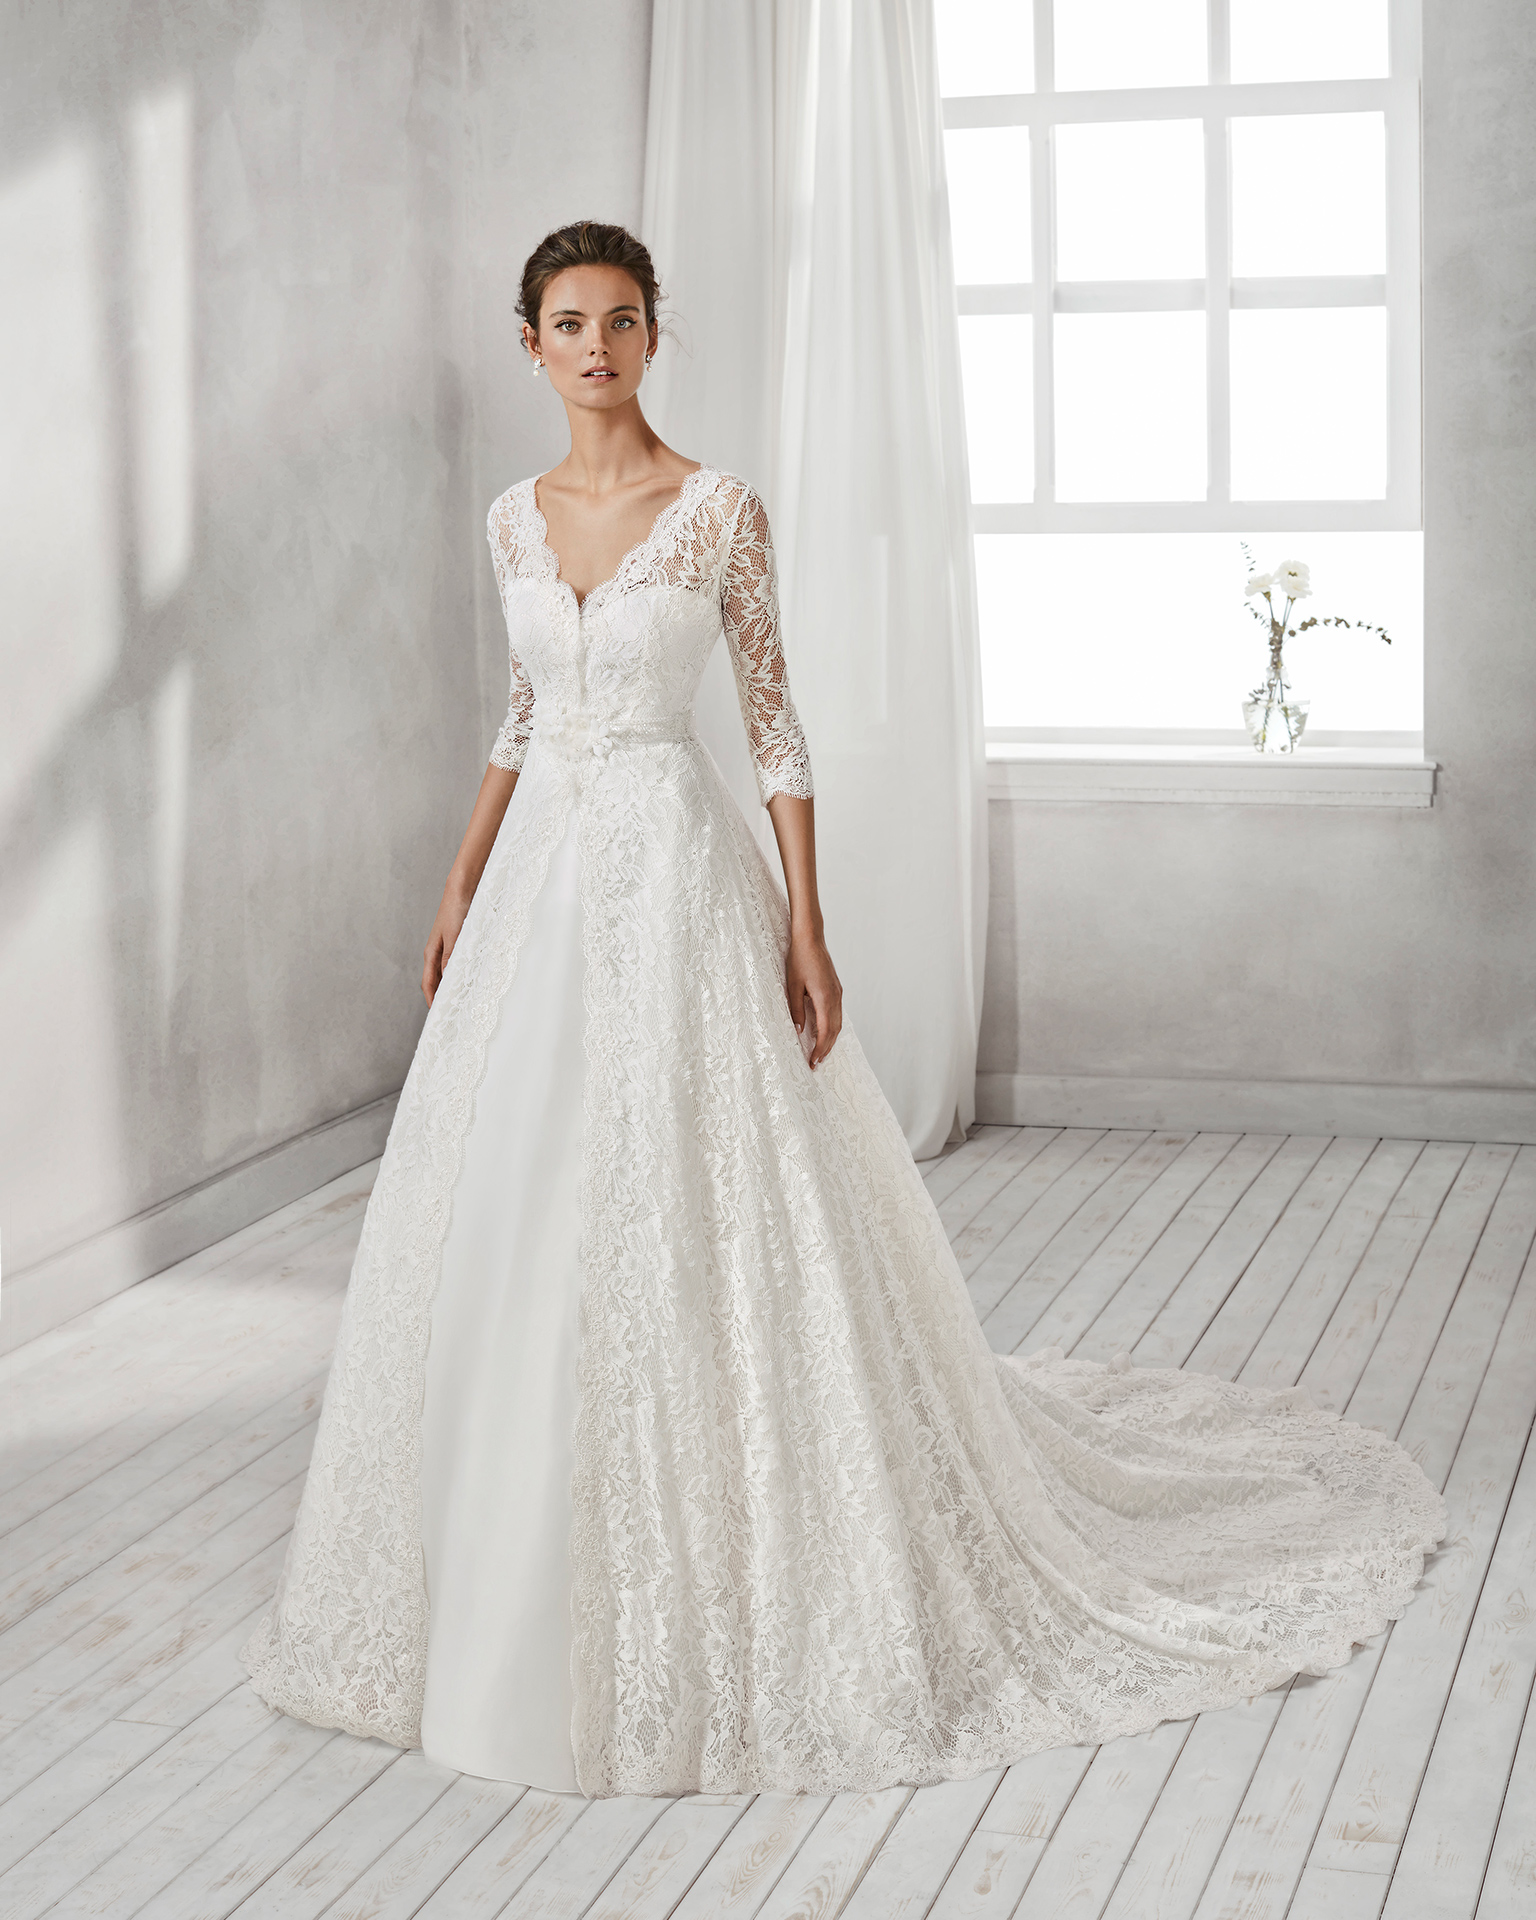 Mermaid-style organza wedding dress with sweetheart neckline and long-sleeved beaded lace jacket.